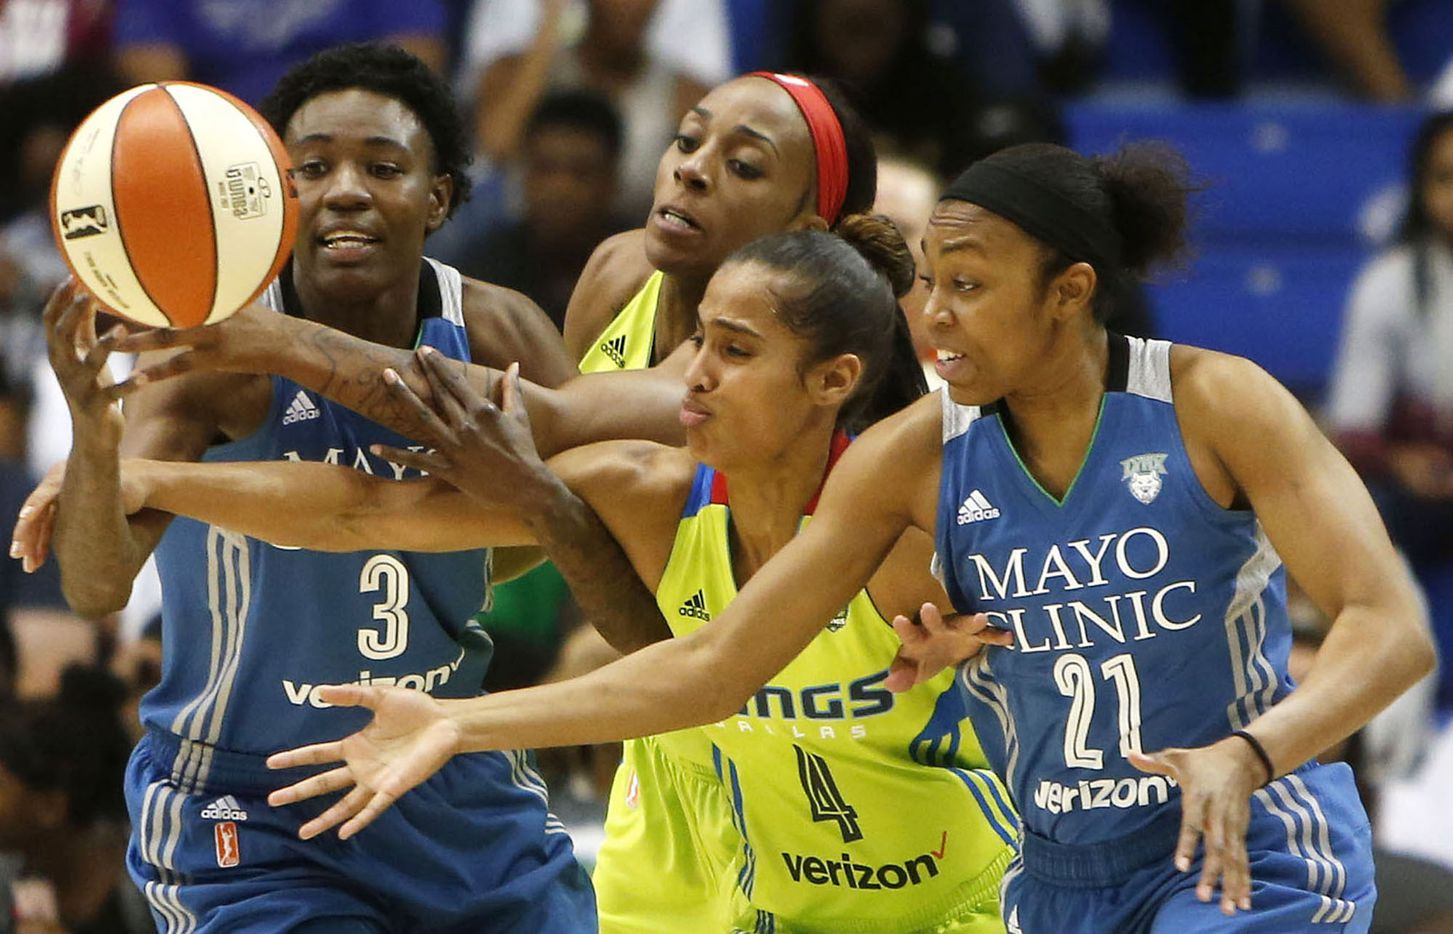 Dallas Wings guard Skylar Diggins (4) and Dallas Wings forward Glory Johnson (25) fight for the ball against Minnesota Lynx forward Natasha Howard (3) and Minnesota Lynx guard Renee Montgomery (21) in the second quarter at College Park Center in Arlington, Texas on Saturday, May 20, 2017.